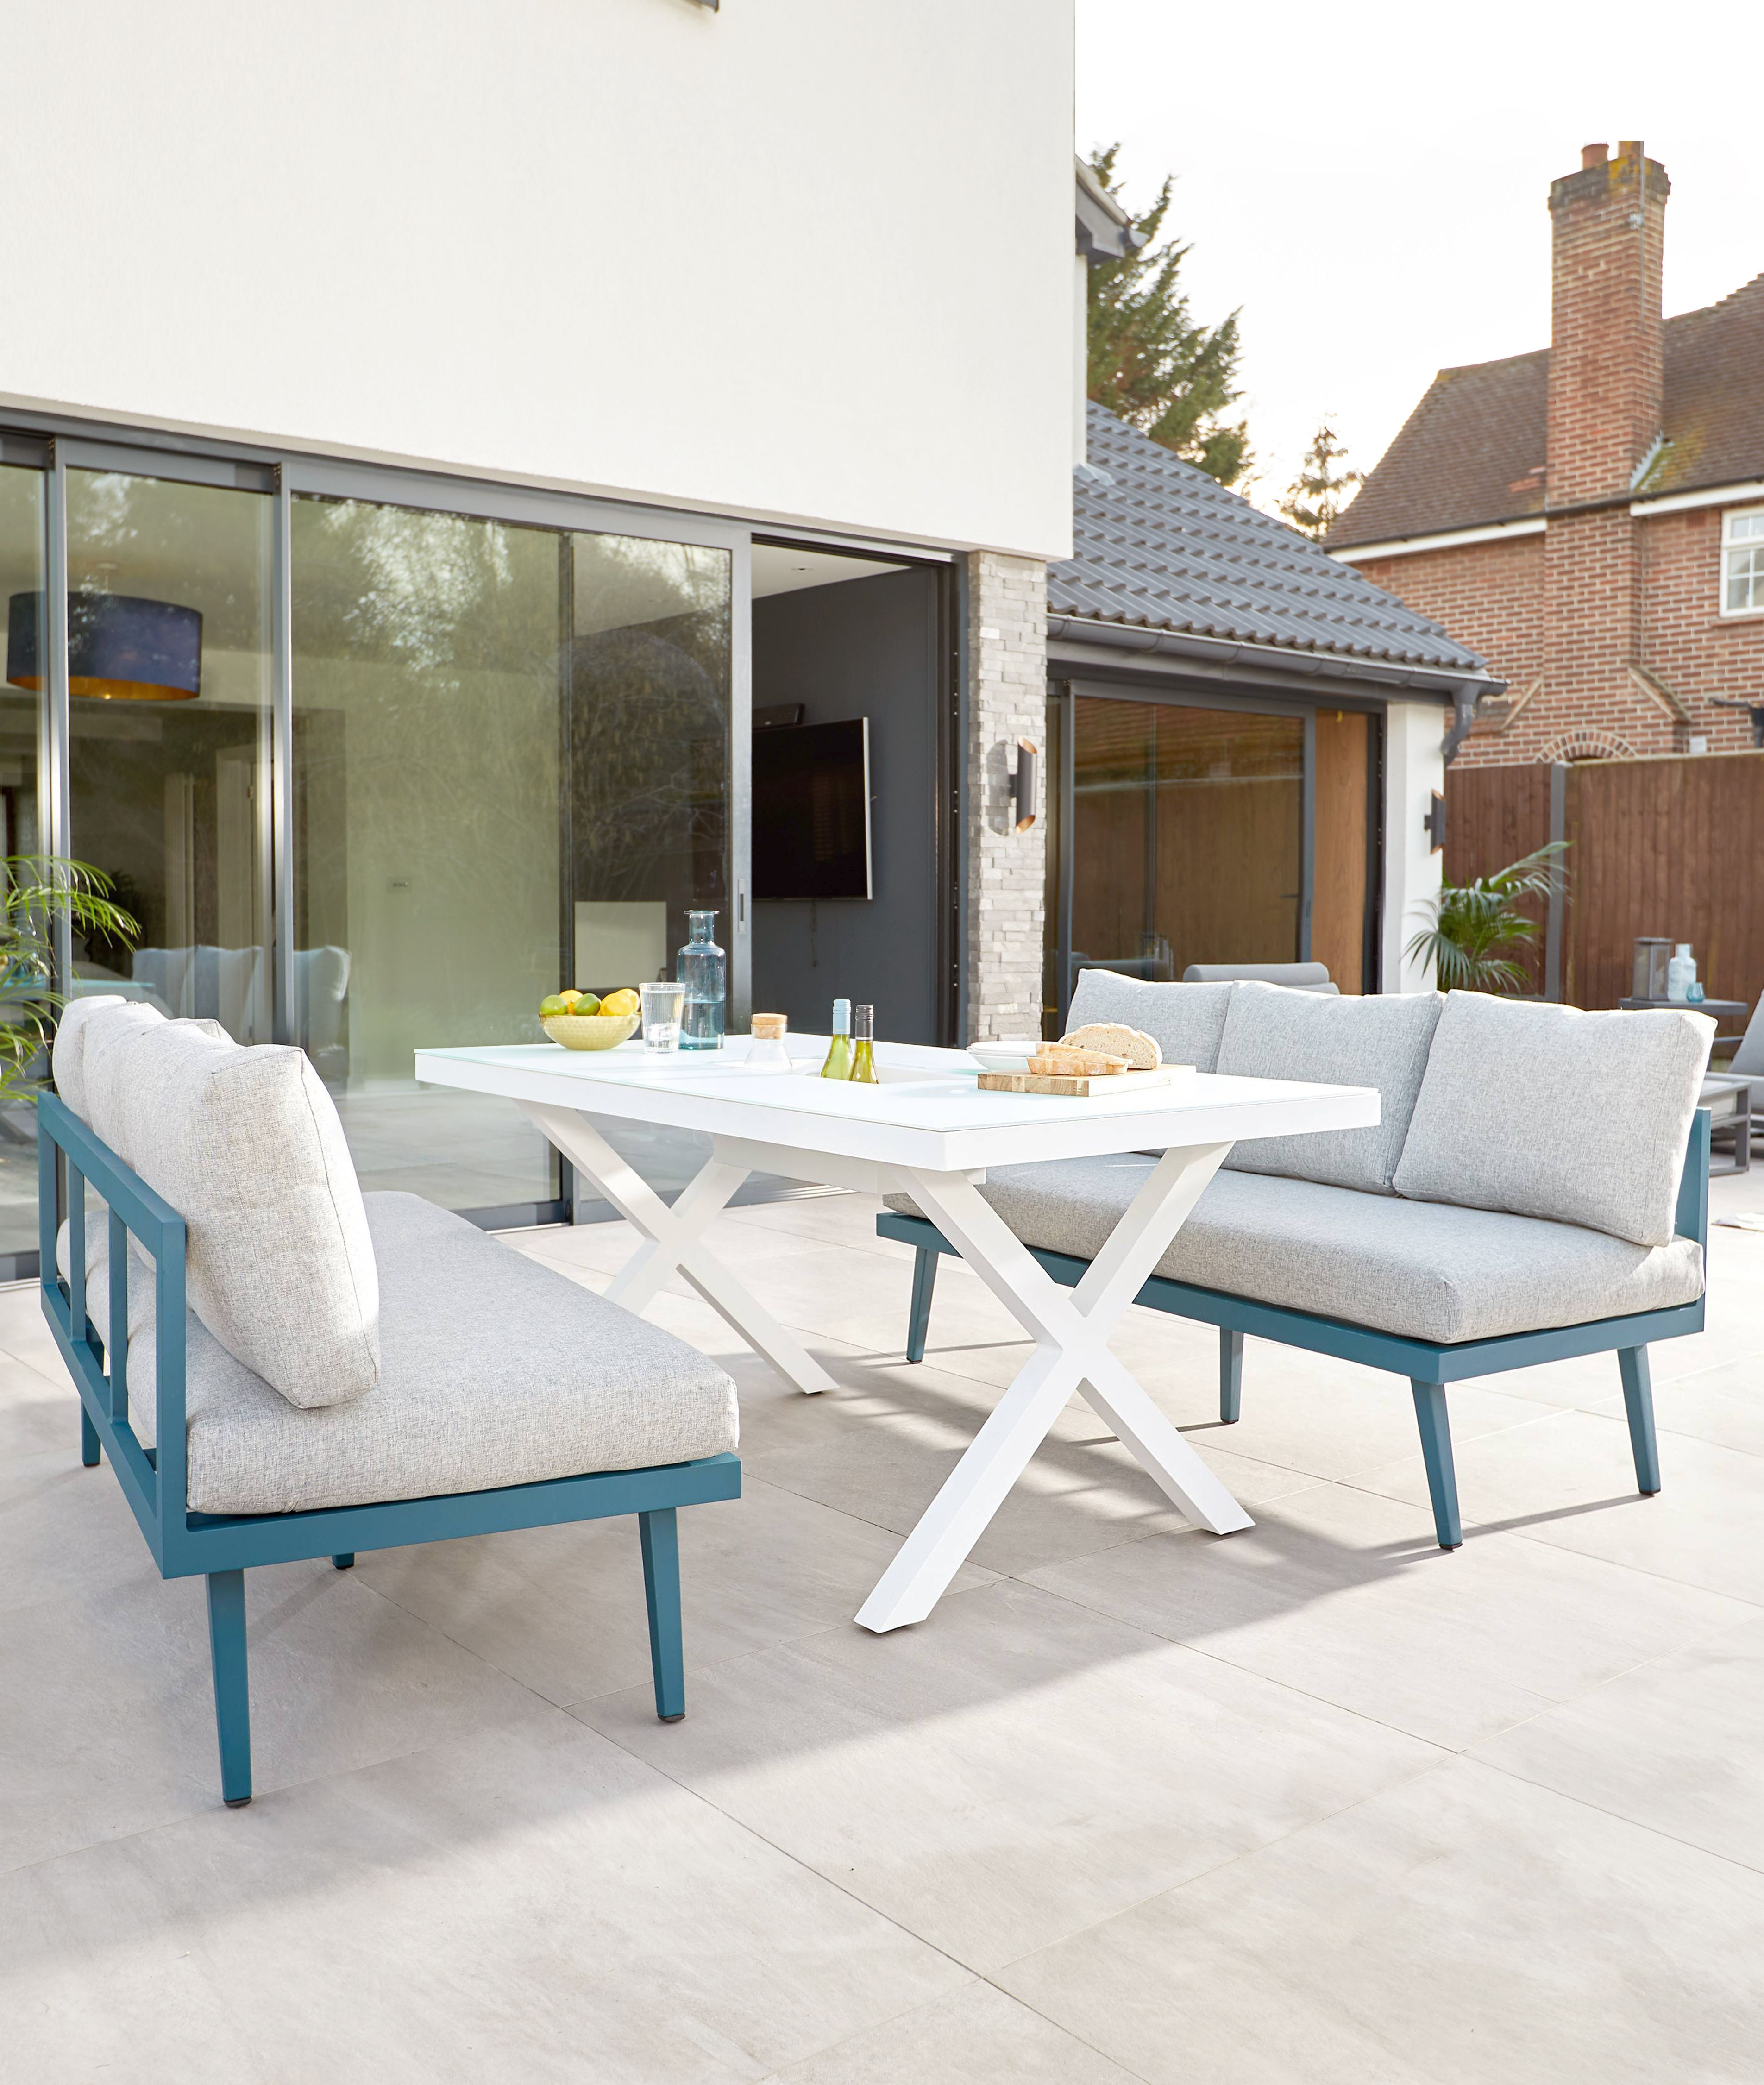 Rio White 6 Seater With Palermo Ocean Bench Outdoor Dining Set In